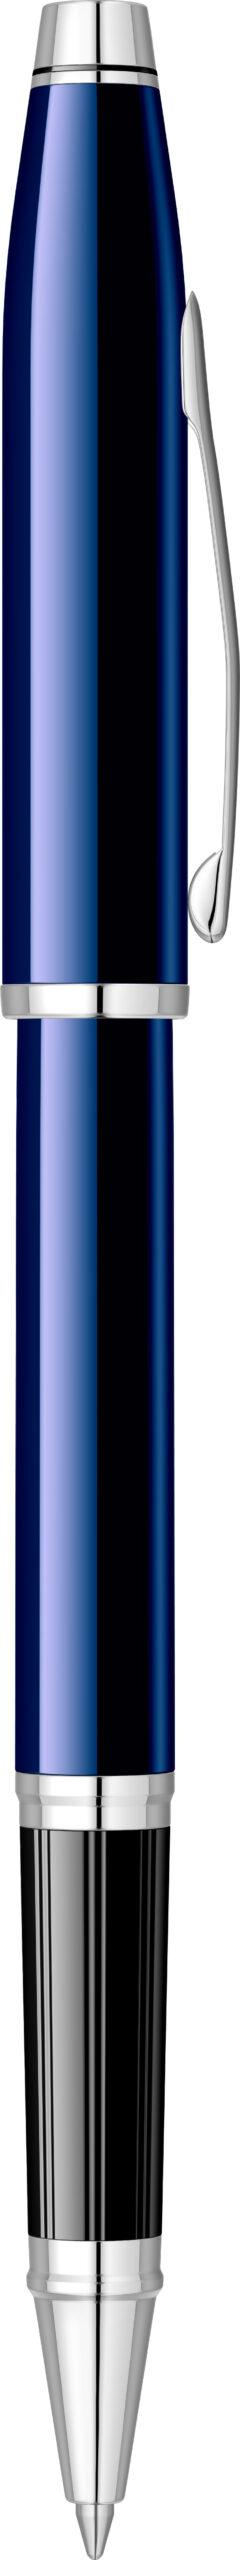 Translucent Blue Lacquer RT Roller - Cross 3